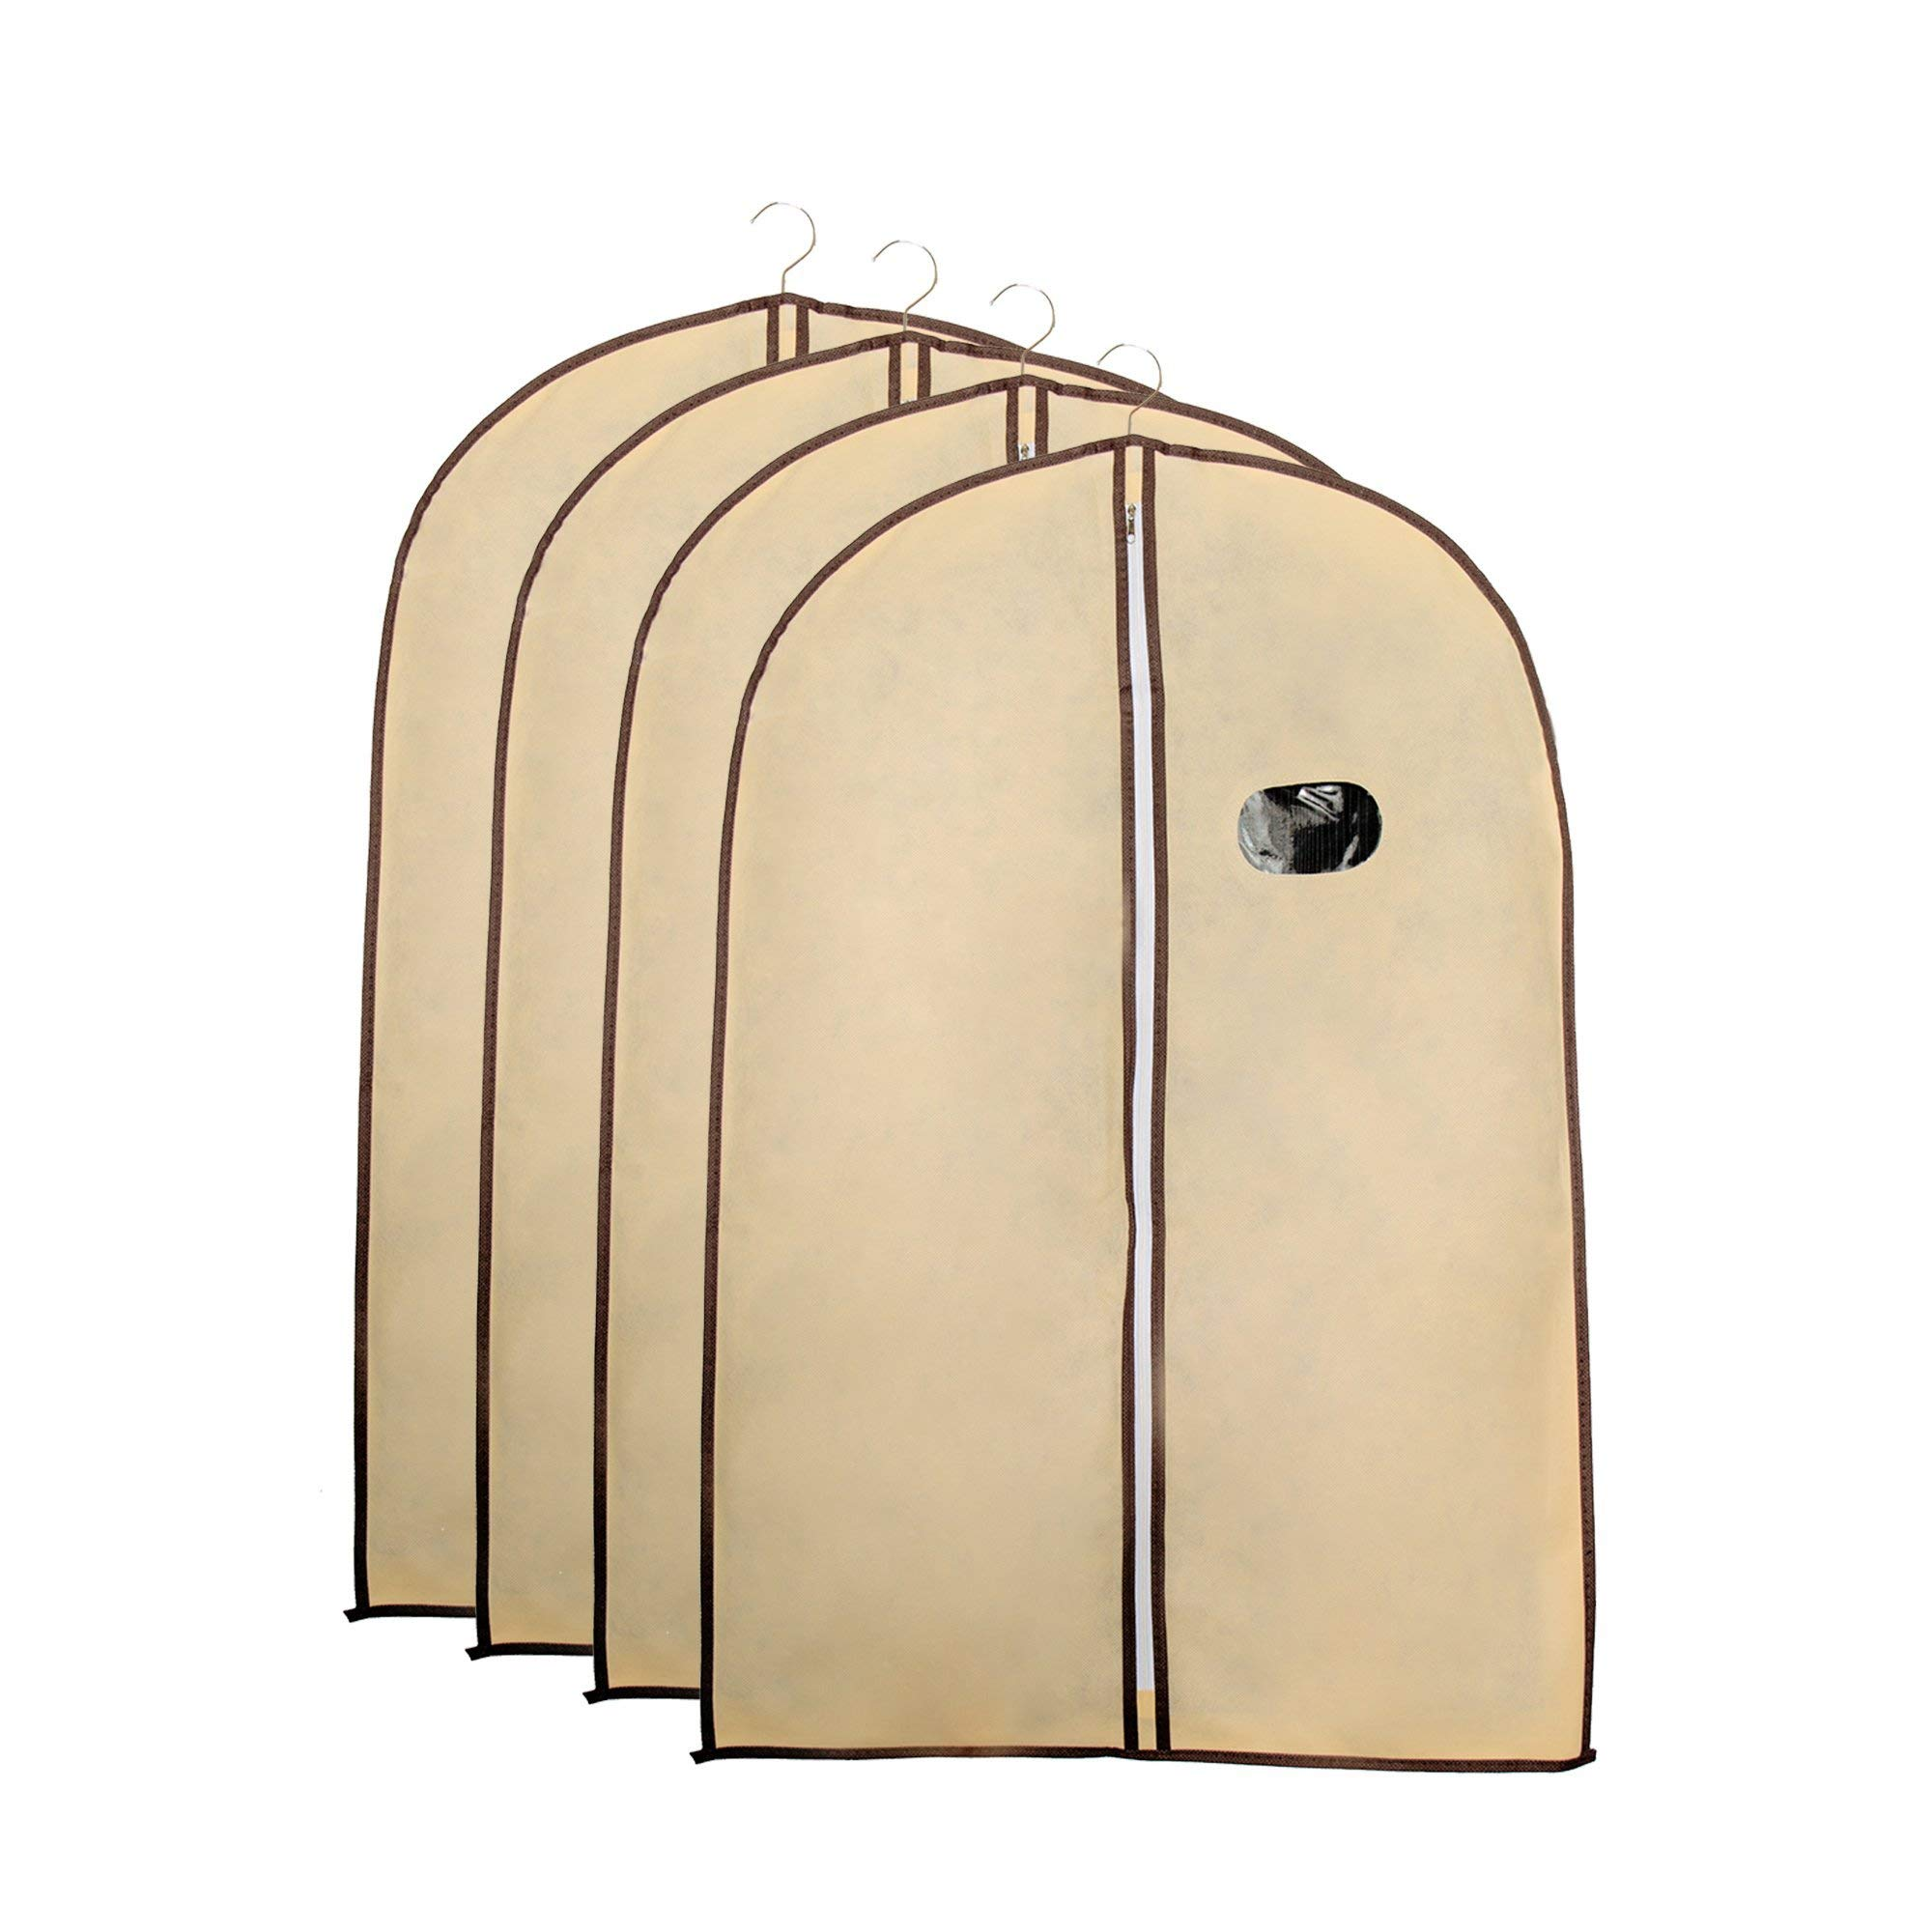 Garment Bags by Home Zone - 4 Pack of Breathable Garment Bag Clothes Covers - Protect Garments, Suits and Costumes - Ideal for Travel - Coffee & Cream Finish - Includes 4 Medium Size Garment Bags (90cms 60cms)